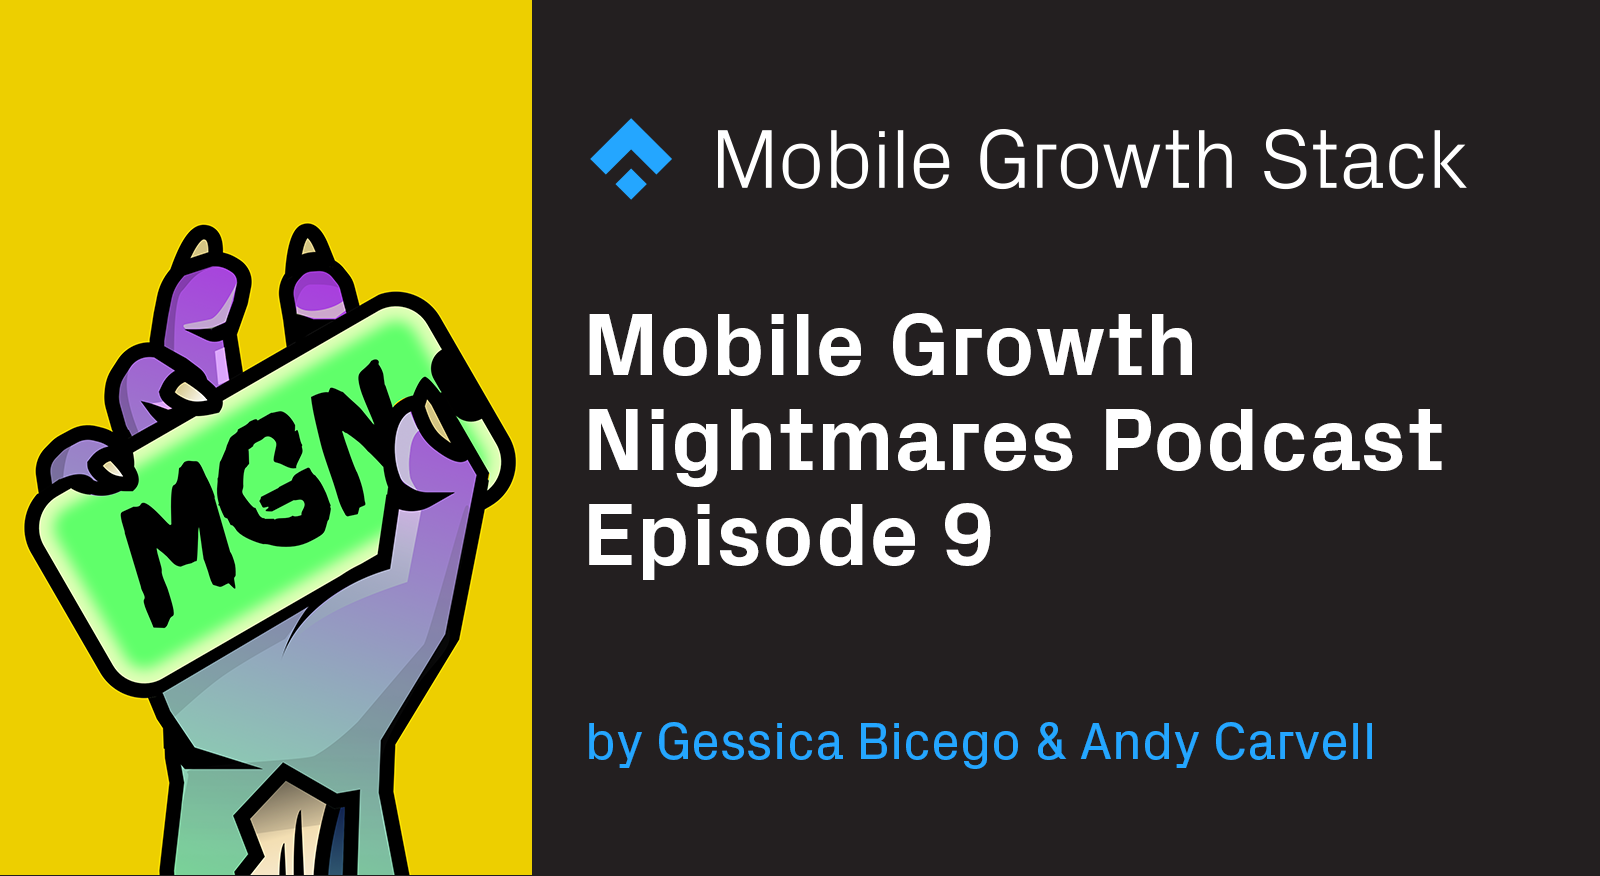 Mobile Growth Nightmares Episode 9 — Recorded at AGS 2019 with Ada Dubrawska from the Messaging team at Clue & Catherine Bostian, CRM Manager at Delivery Hero